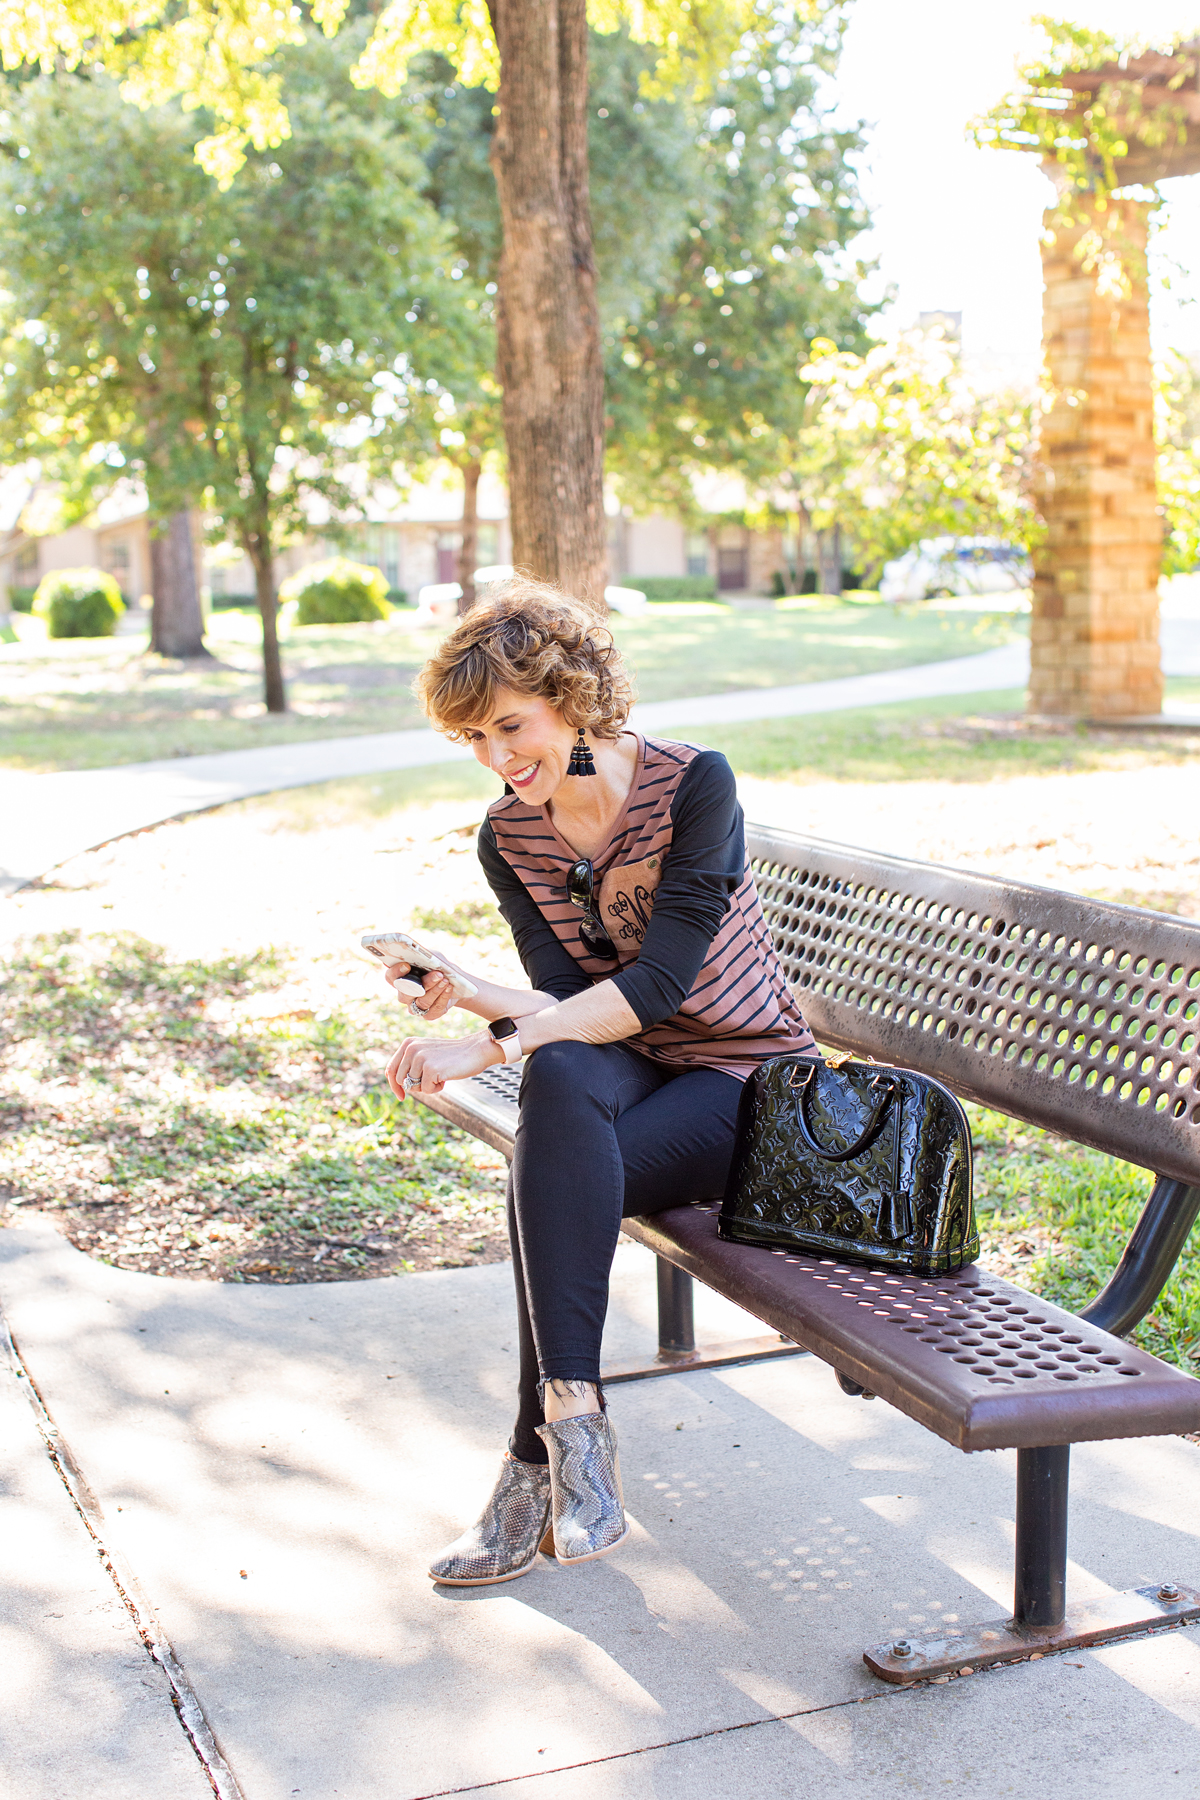 woman over 50 in brown and black outfit sitting on park bench looking at her phone